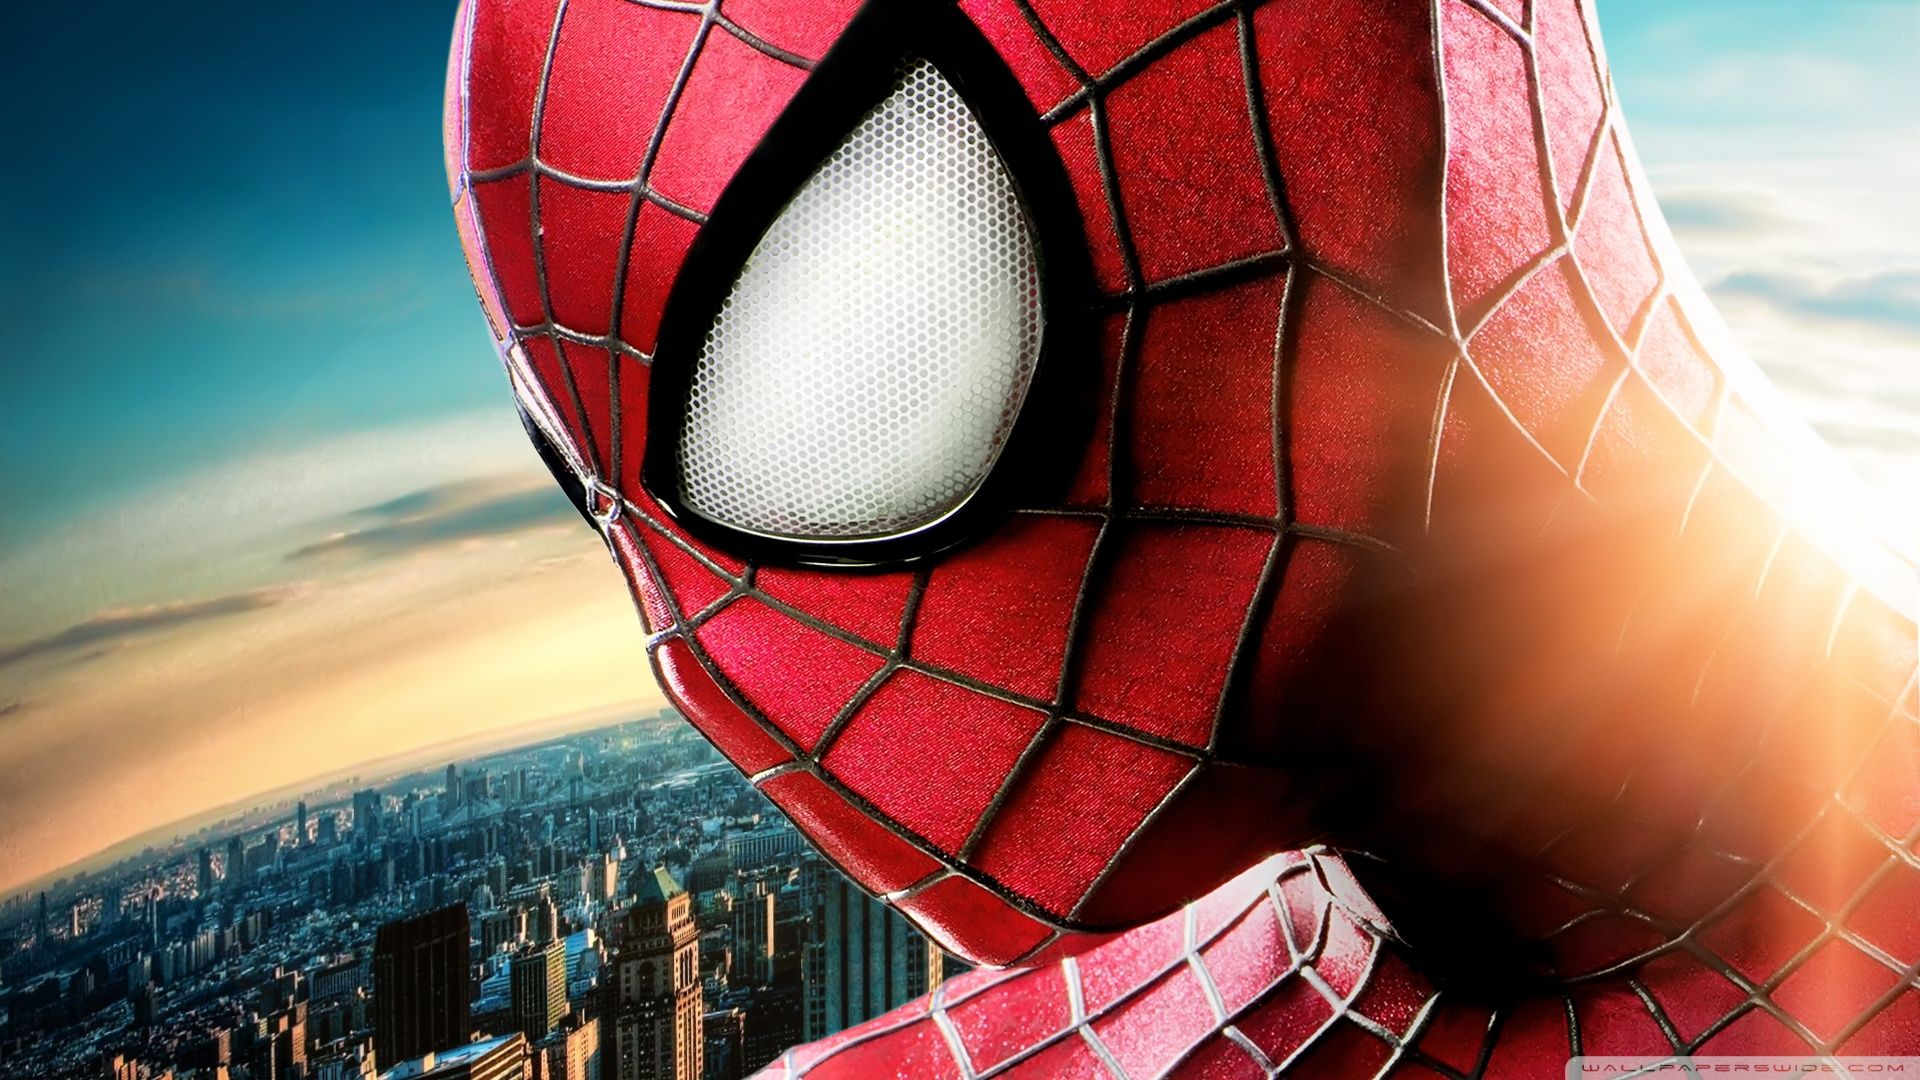 4k Spiderman Wallpapers Top Free 4k Spiderman Backgrounds